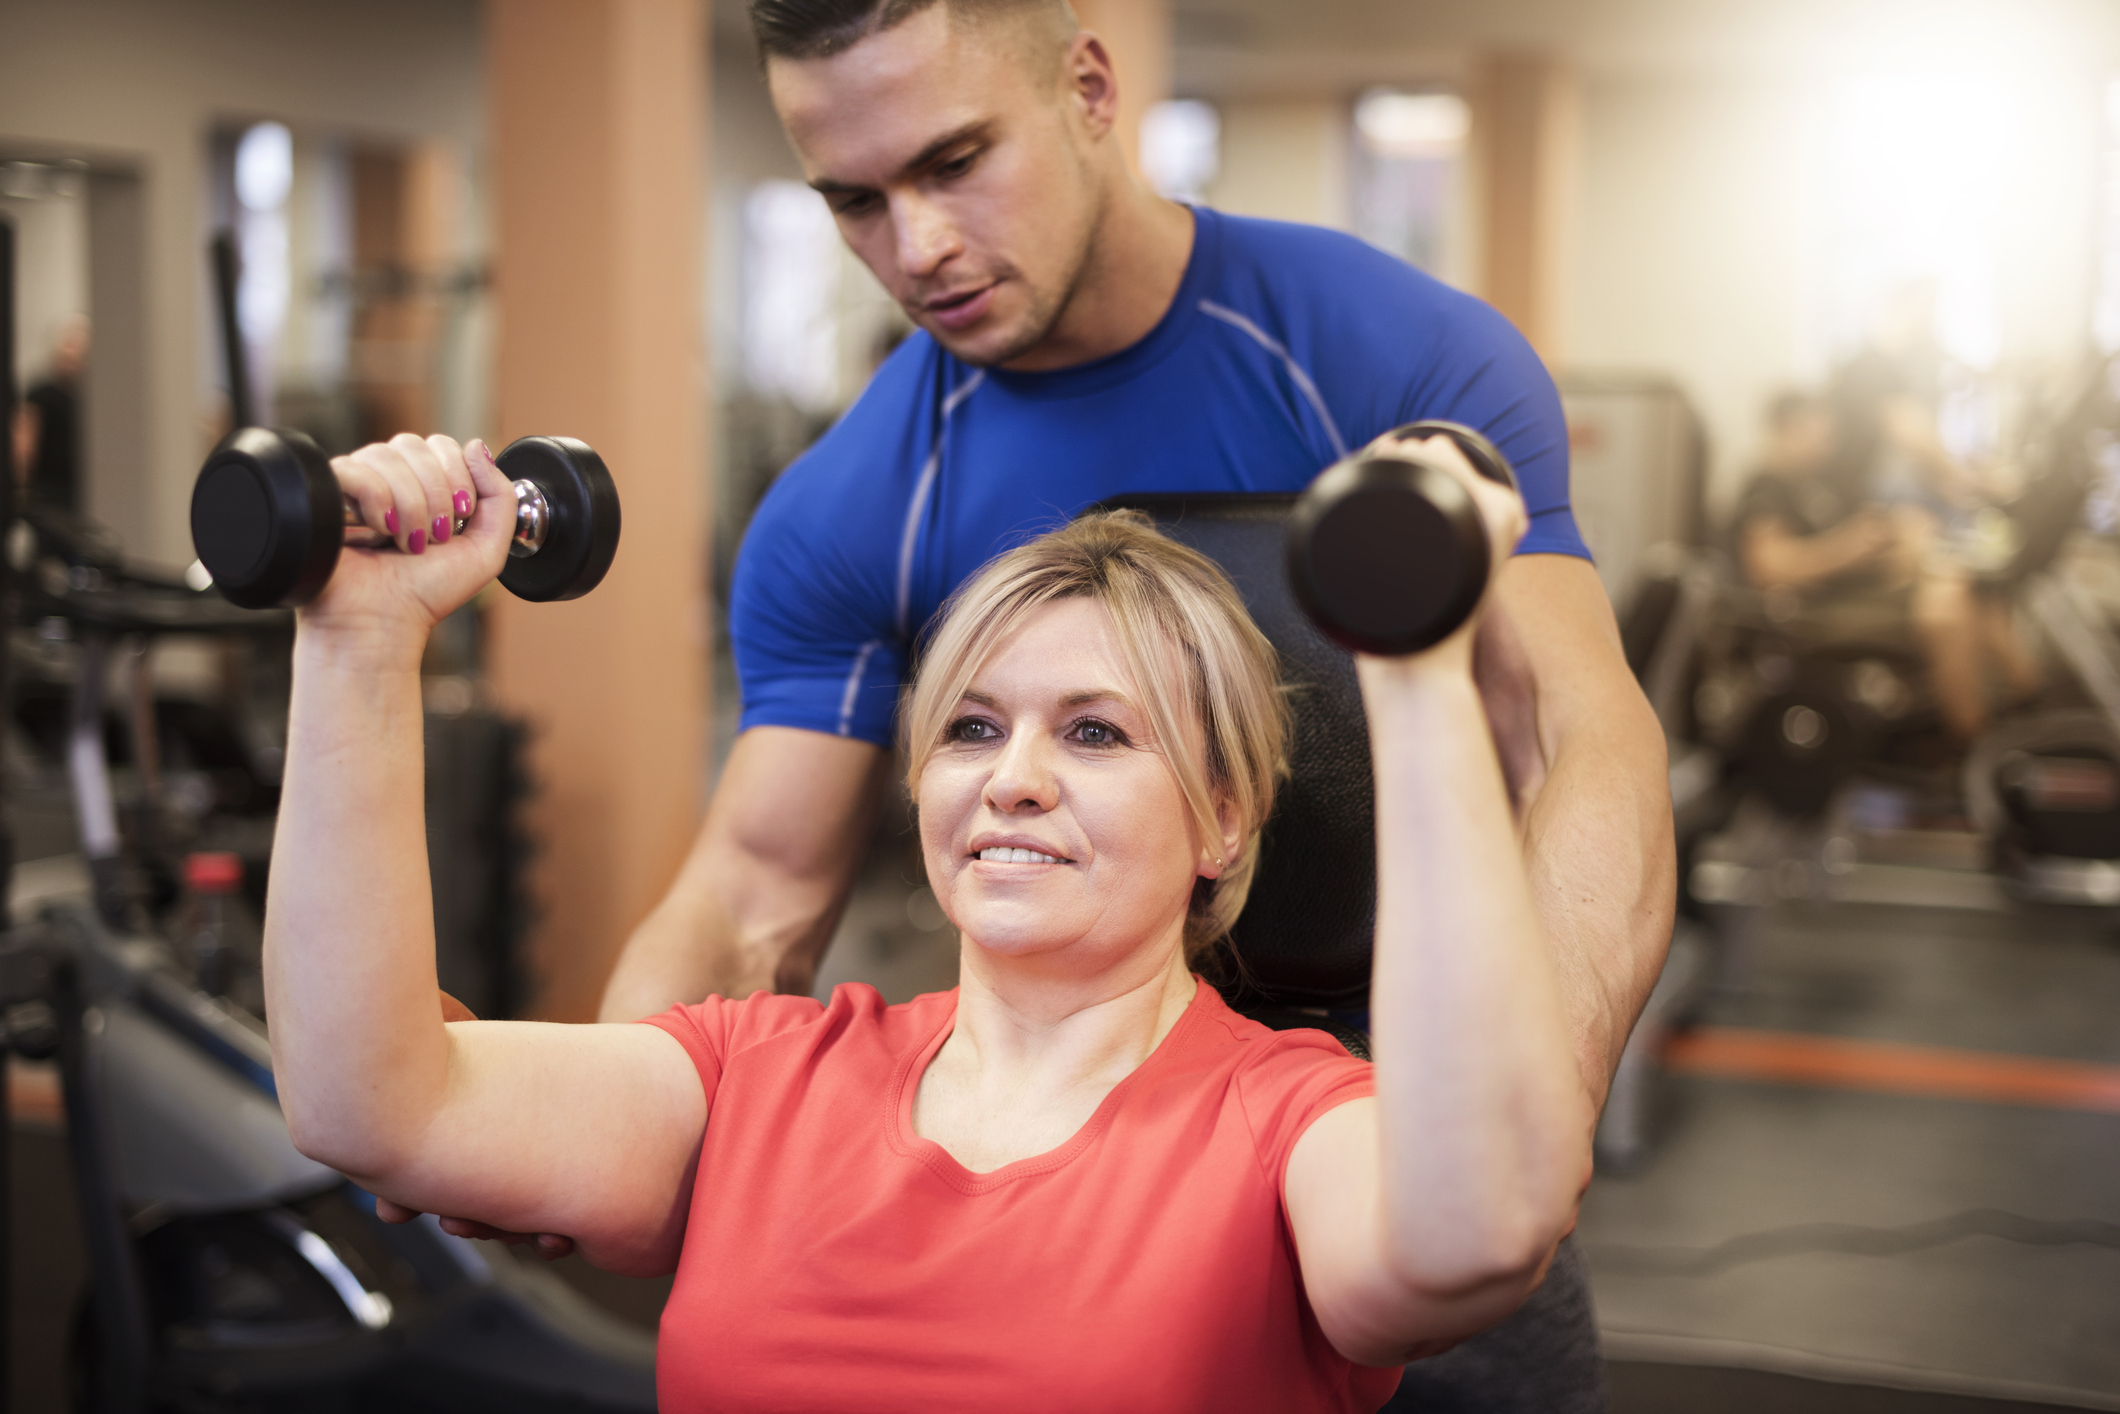 Woman weight lifting with personal trainer